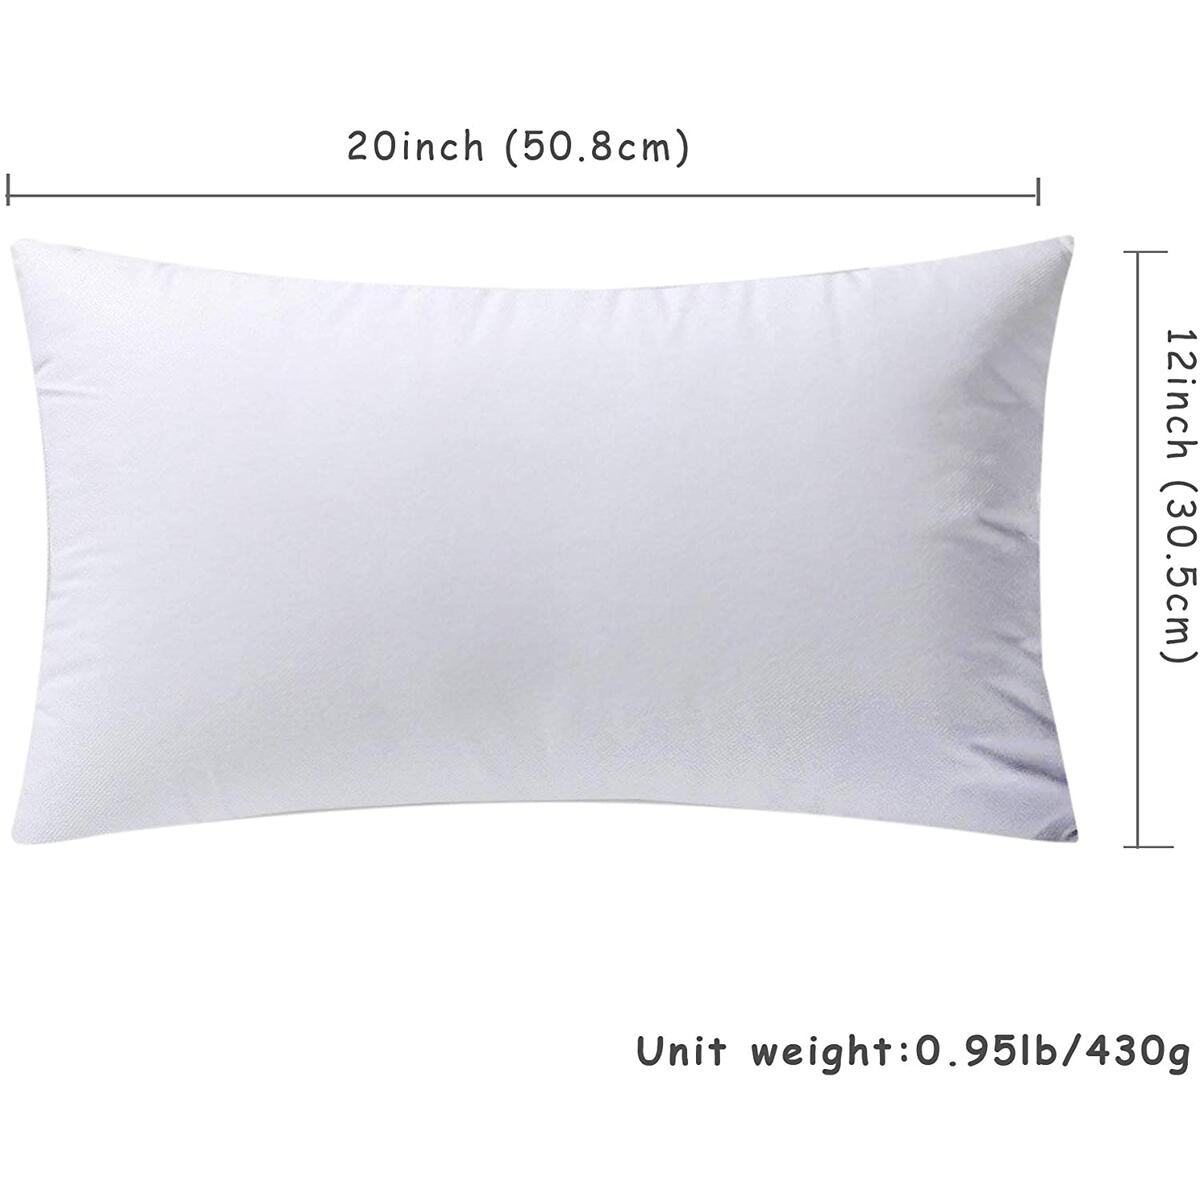 Eggishorn Throw Pillow Inserts (Pack of 2) 12x20 inch Lumbar Pillow Stuffer Fully Filling with 430g Premium Resilient Microfiber Suitable for Soft Bed and Couch Cushion